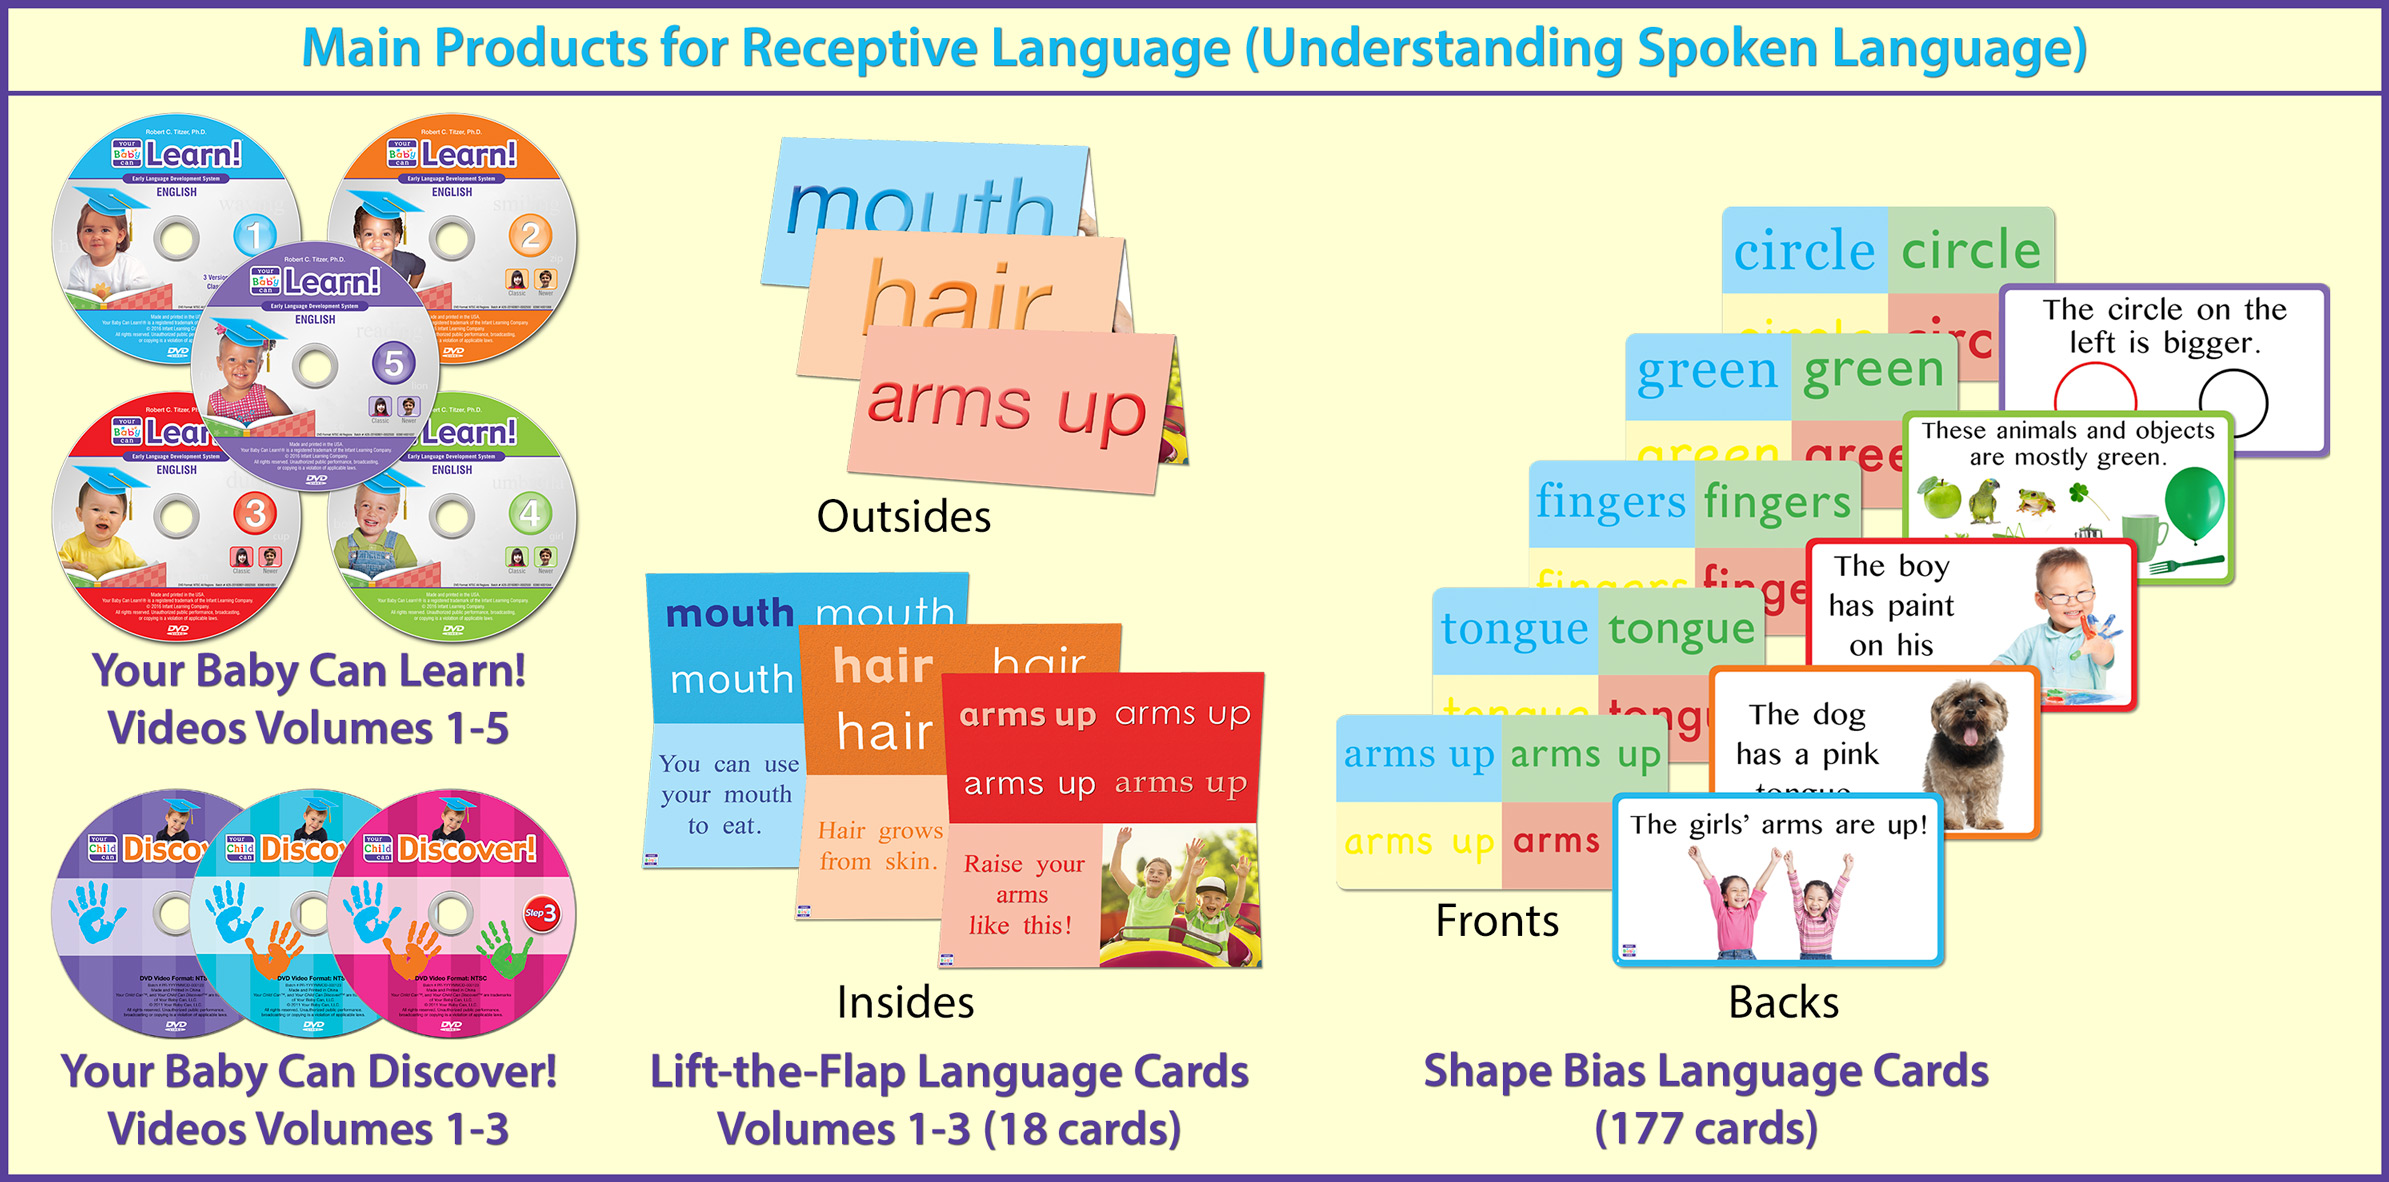 Main Products for Receptive Language